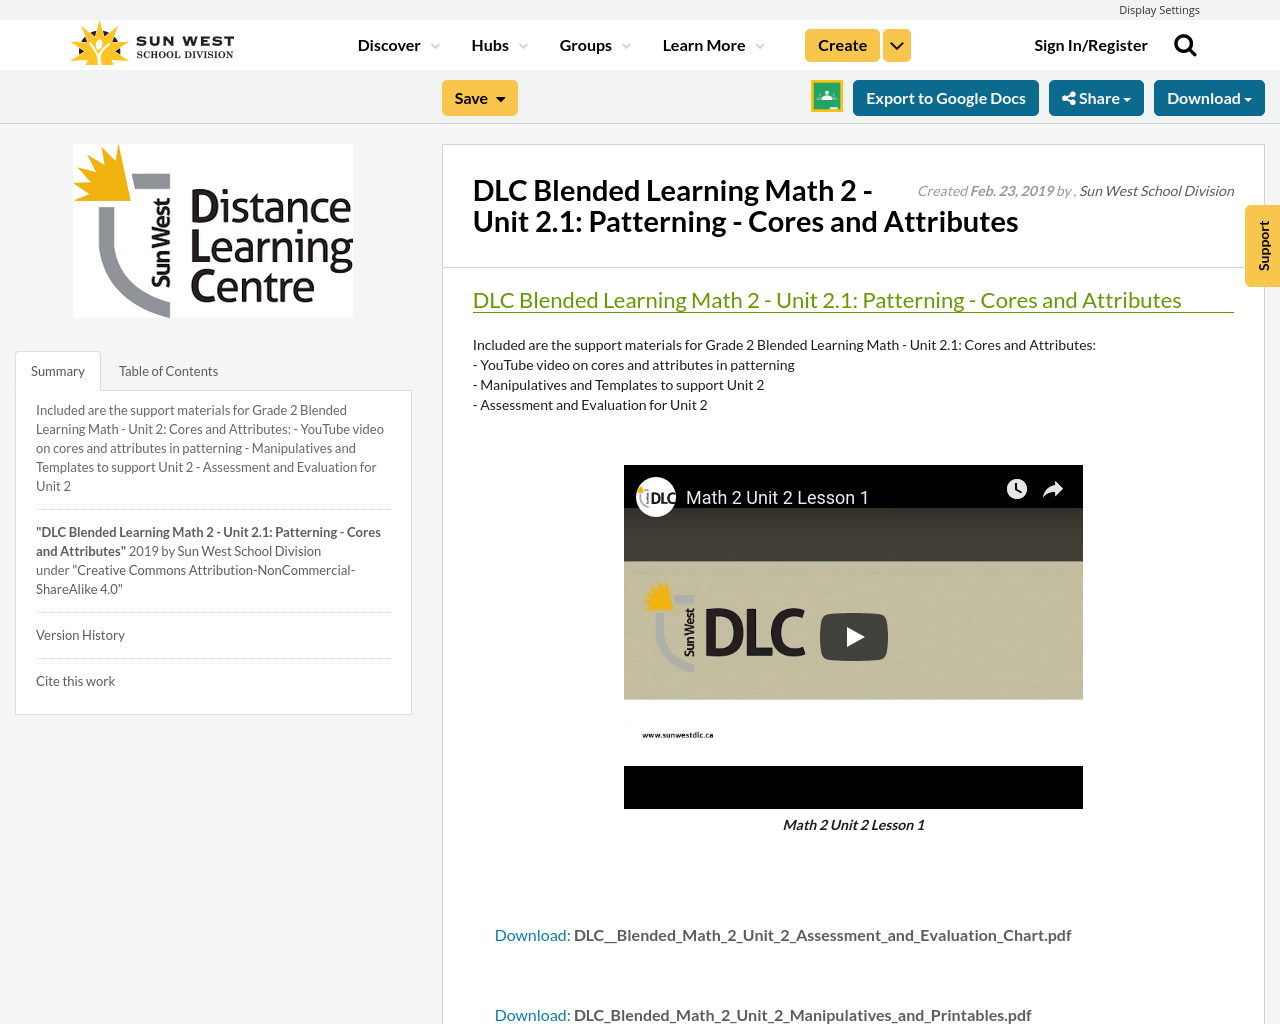 DLC Blended Learning Math 2 - Unit 2 1: Patterning - Cores